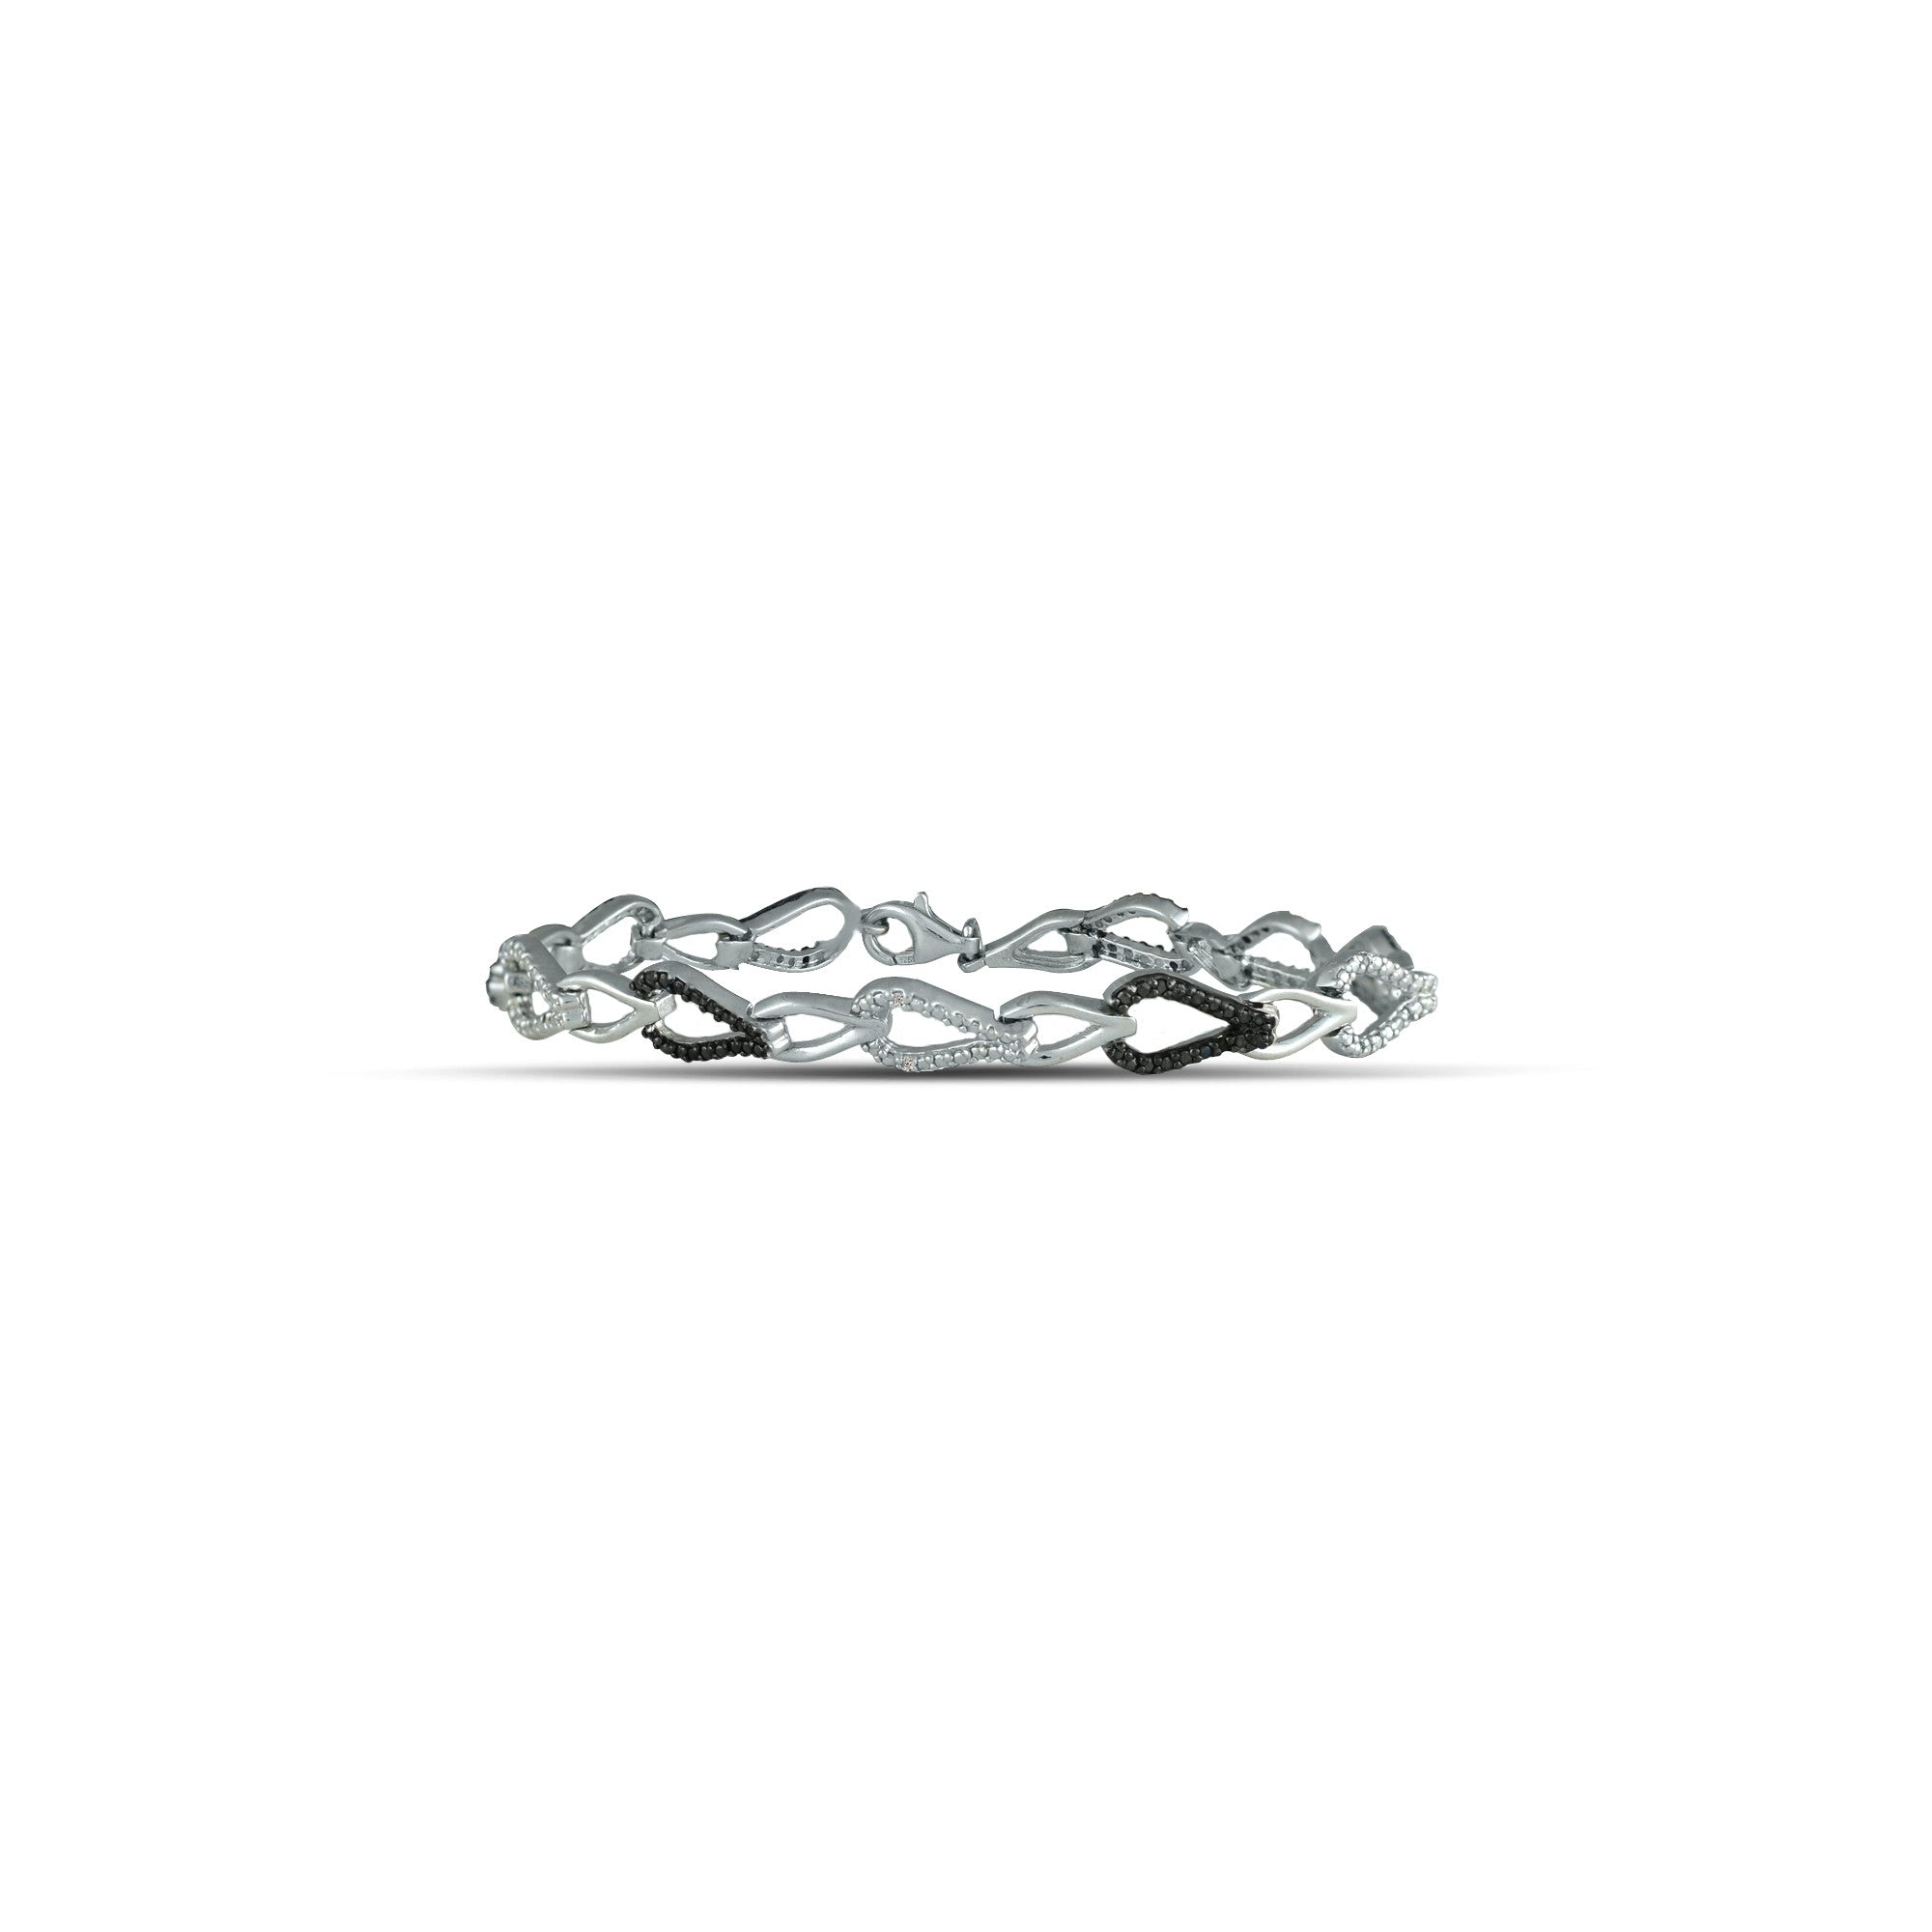 silver diamond ring co somerest premium luxo products jewelry sterling news letter tiffany mesh size untitled